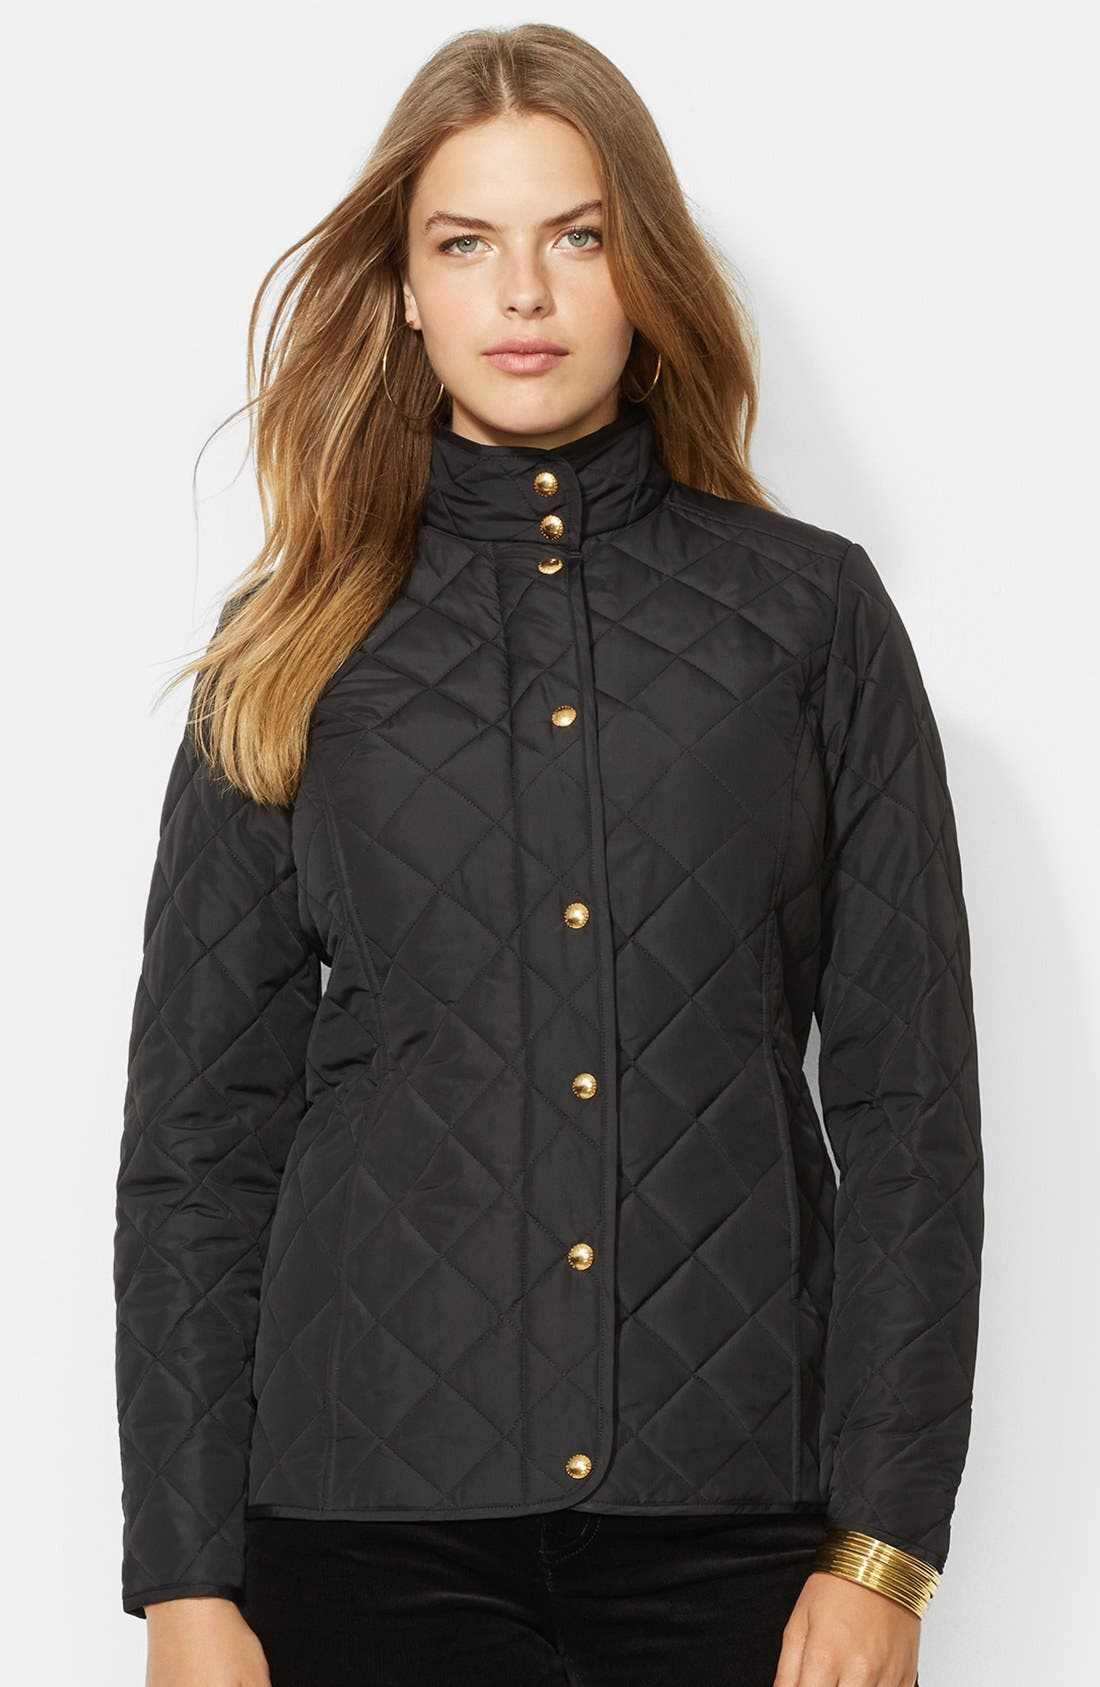 Quilted Mock Neck Jacket,                             Main thumbnail 1, color,                             008